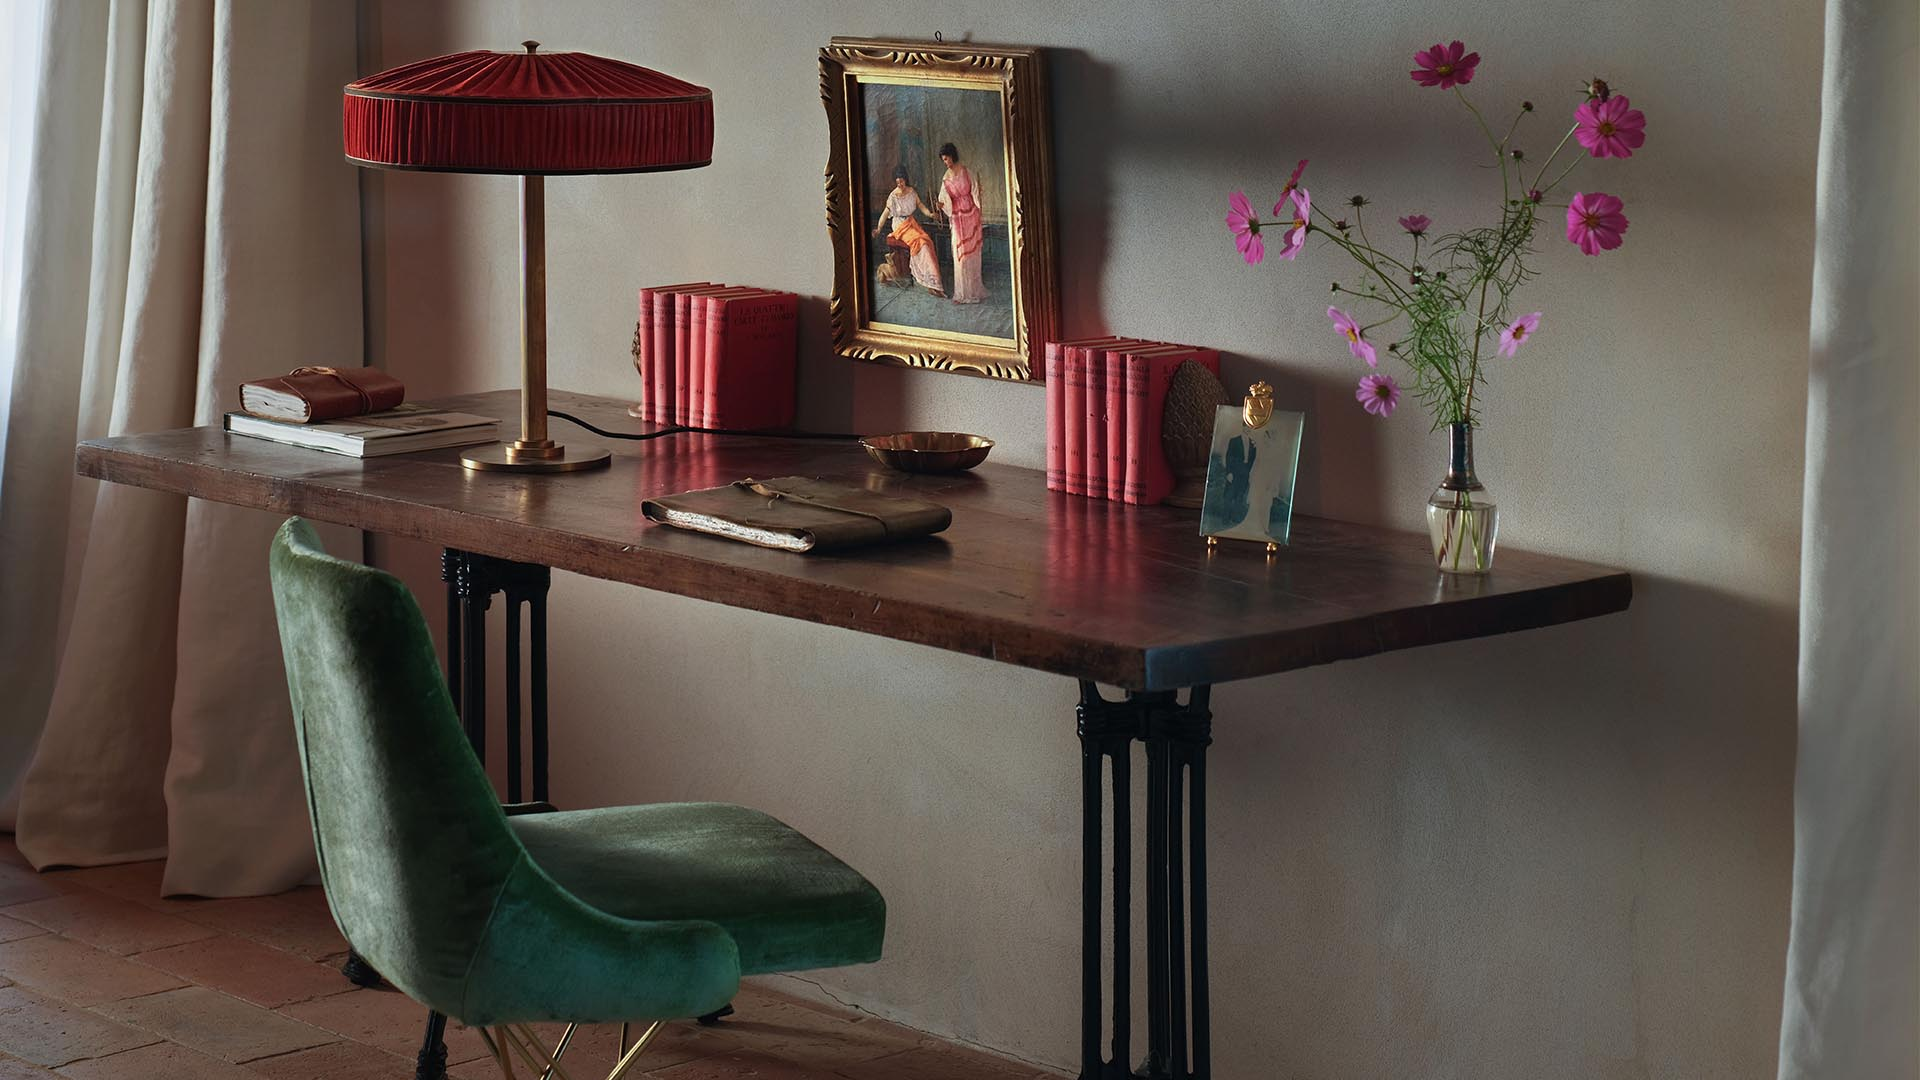 Work from home in style: desk inspiration from 10 boutique hotels